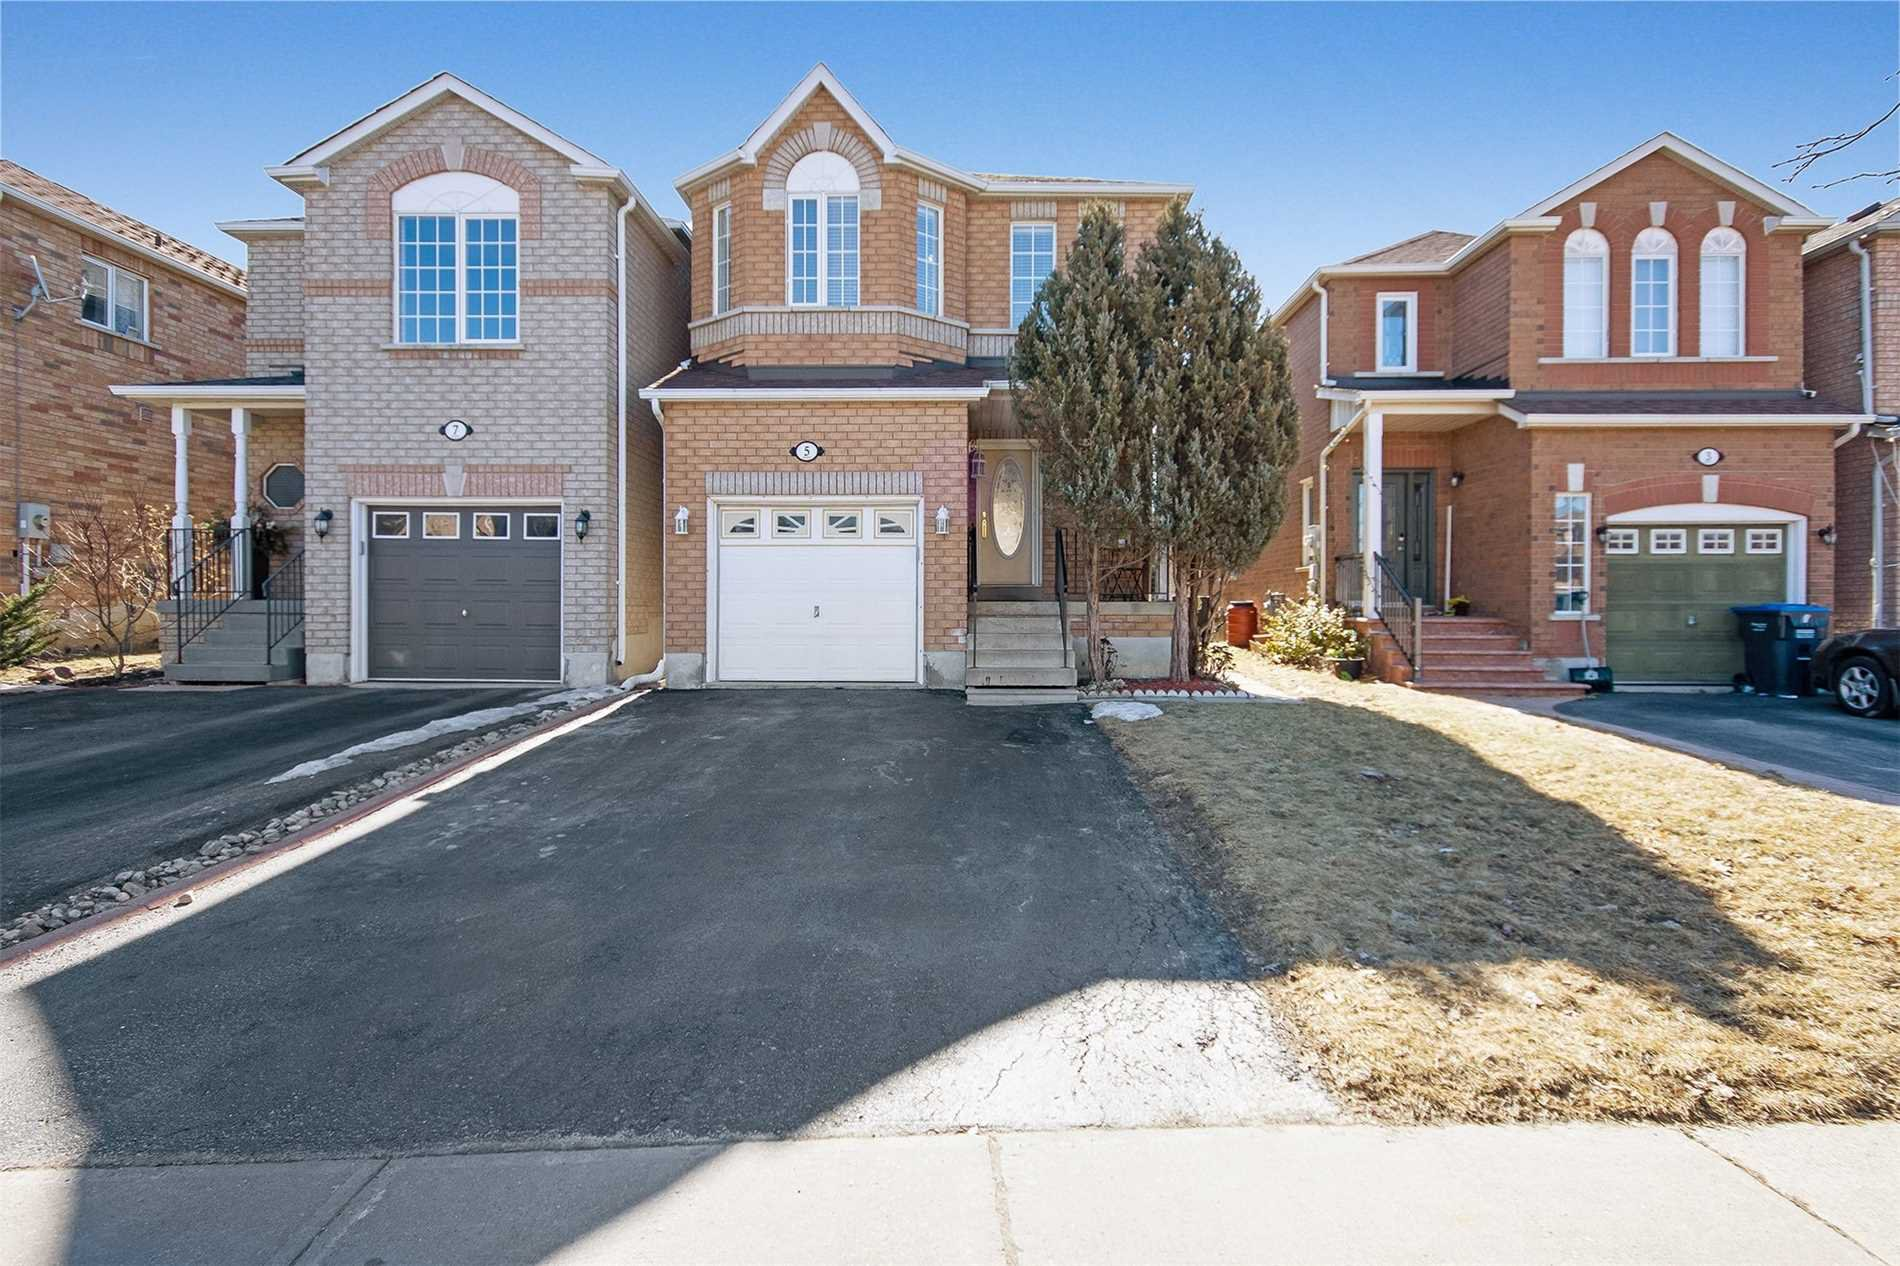 Main Photo: 5 Senator Way in Caledon: Bolton North House (2-Storey) for sale